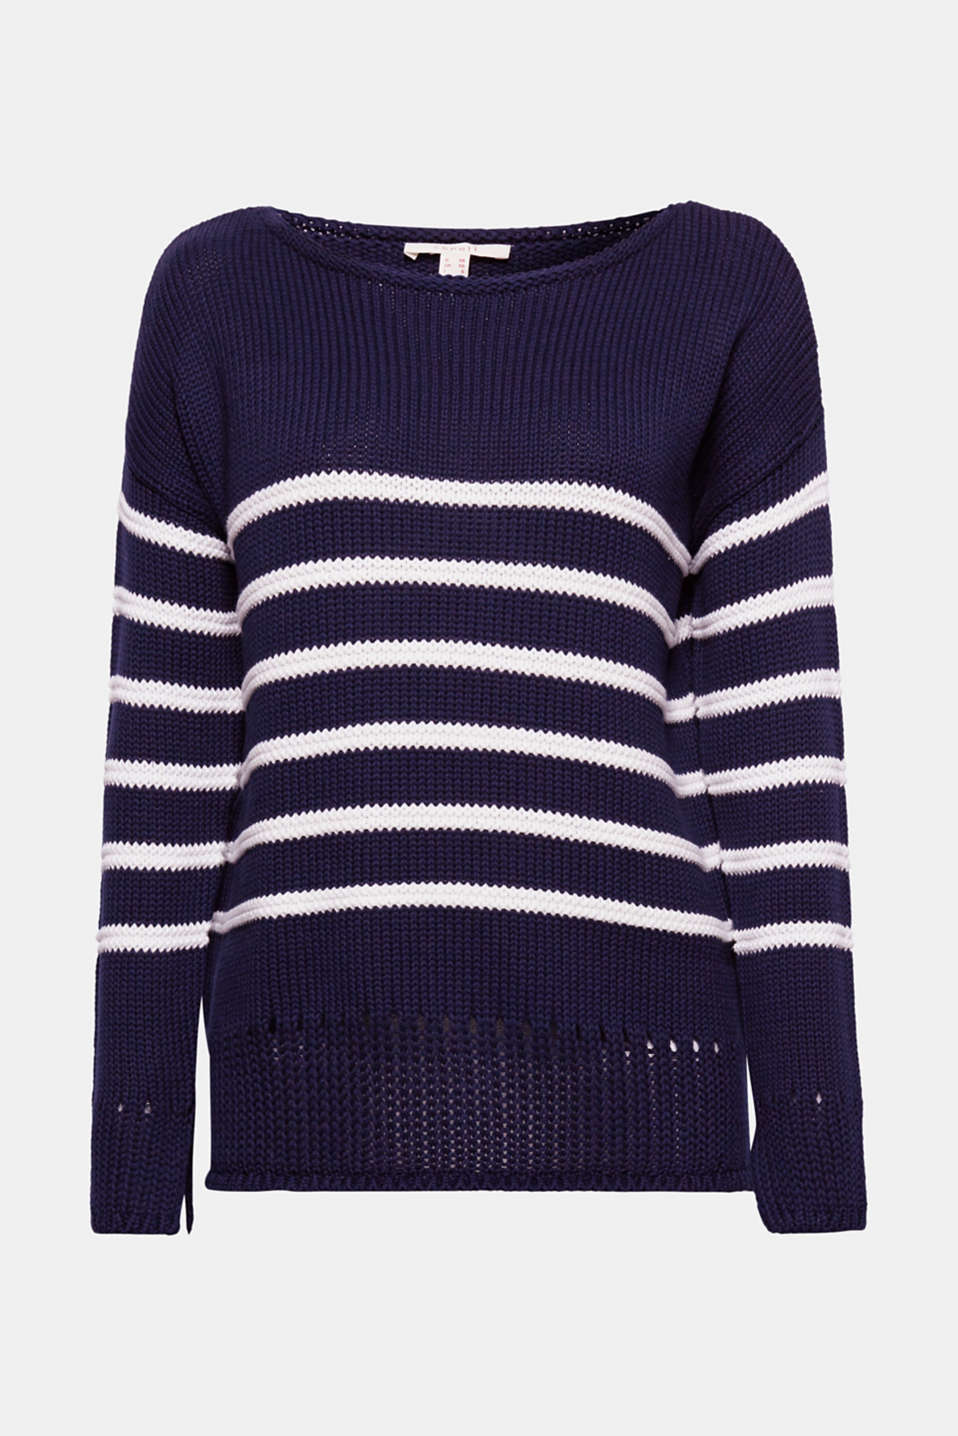 A favourite jumper: soft knitted cotton meets up with nautical stripes and an airy open-work pattern! We like!